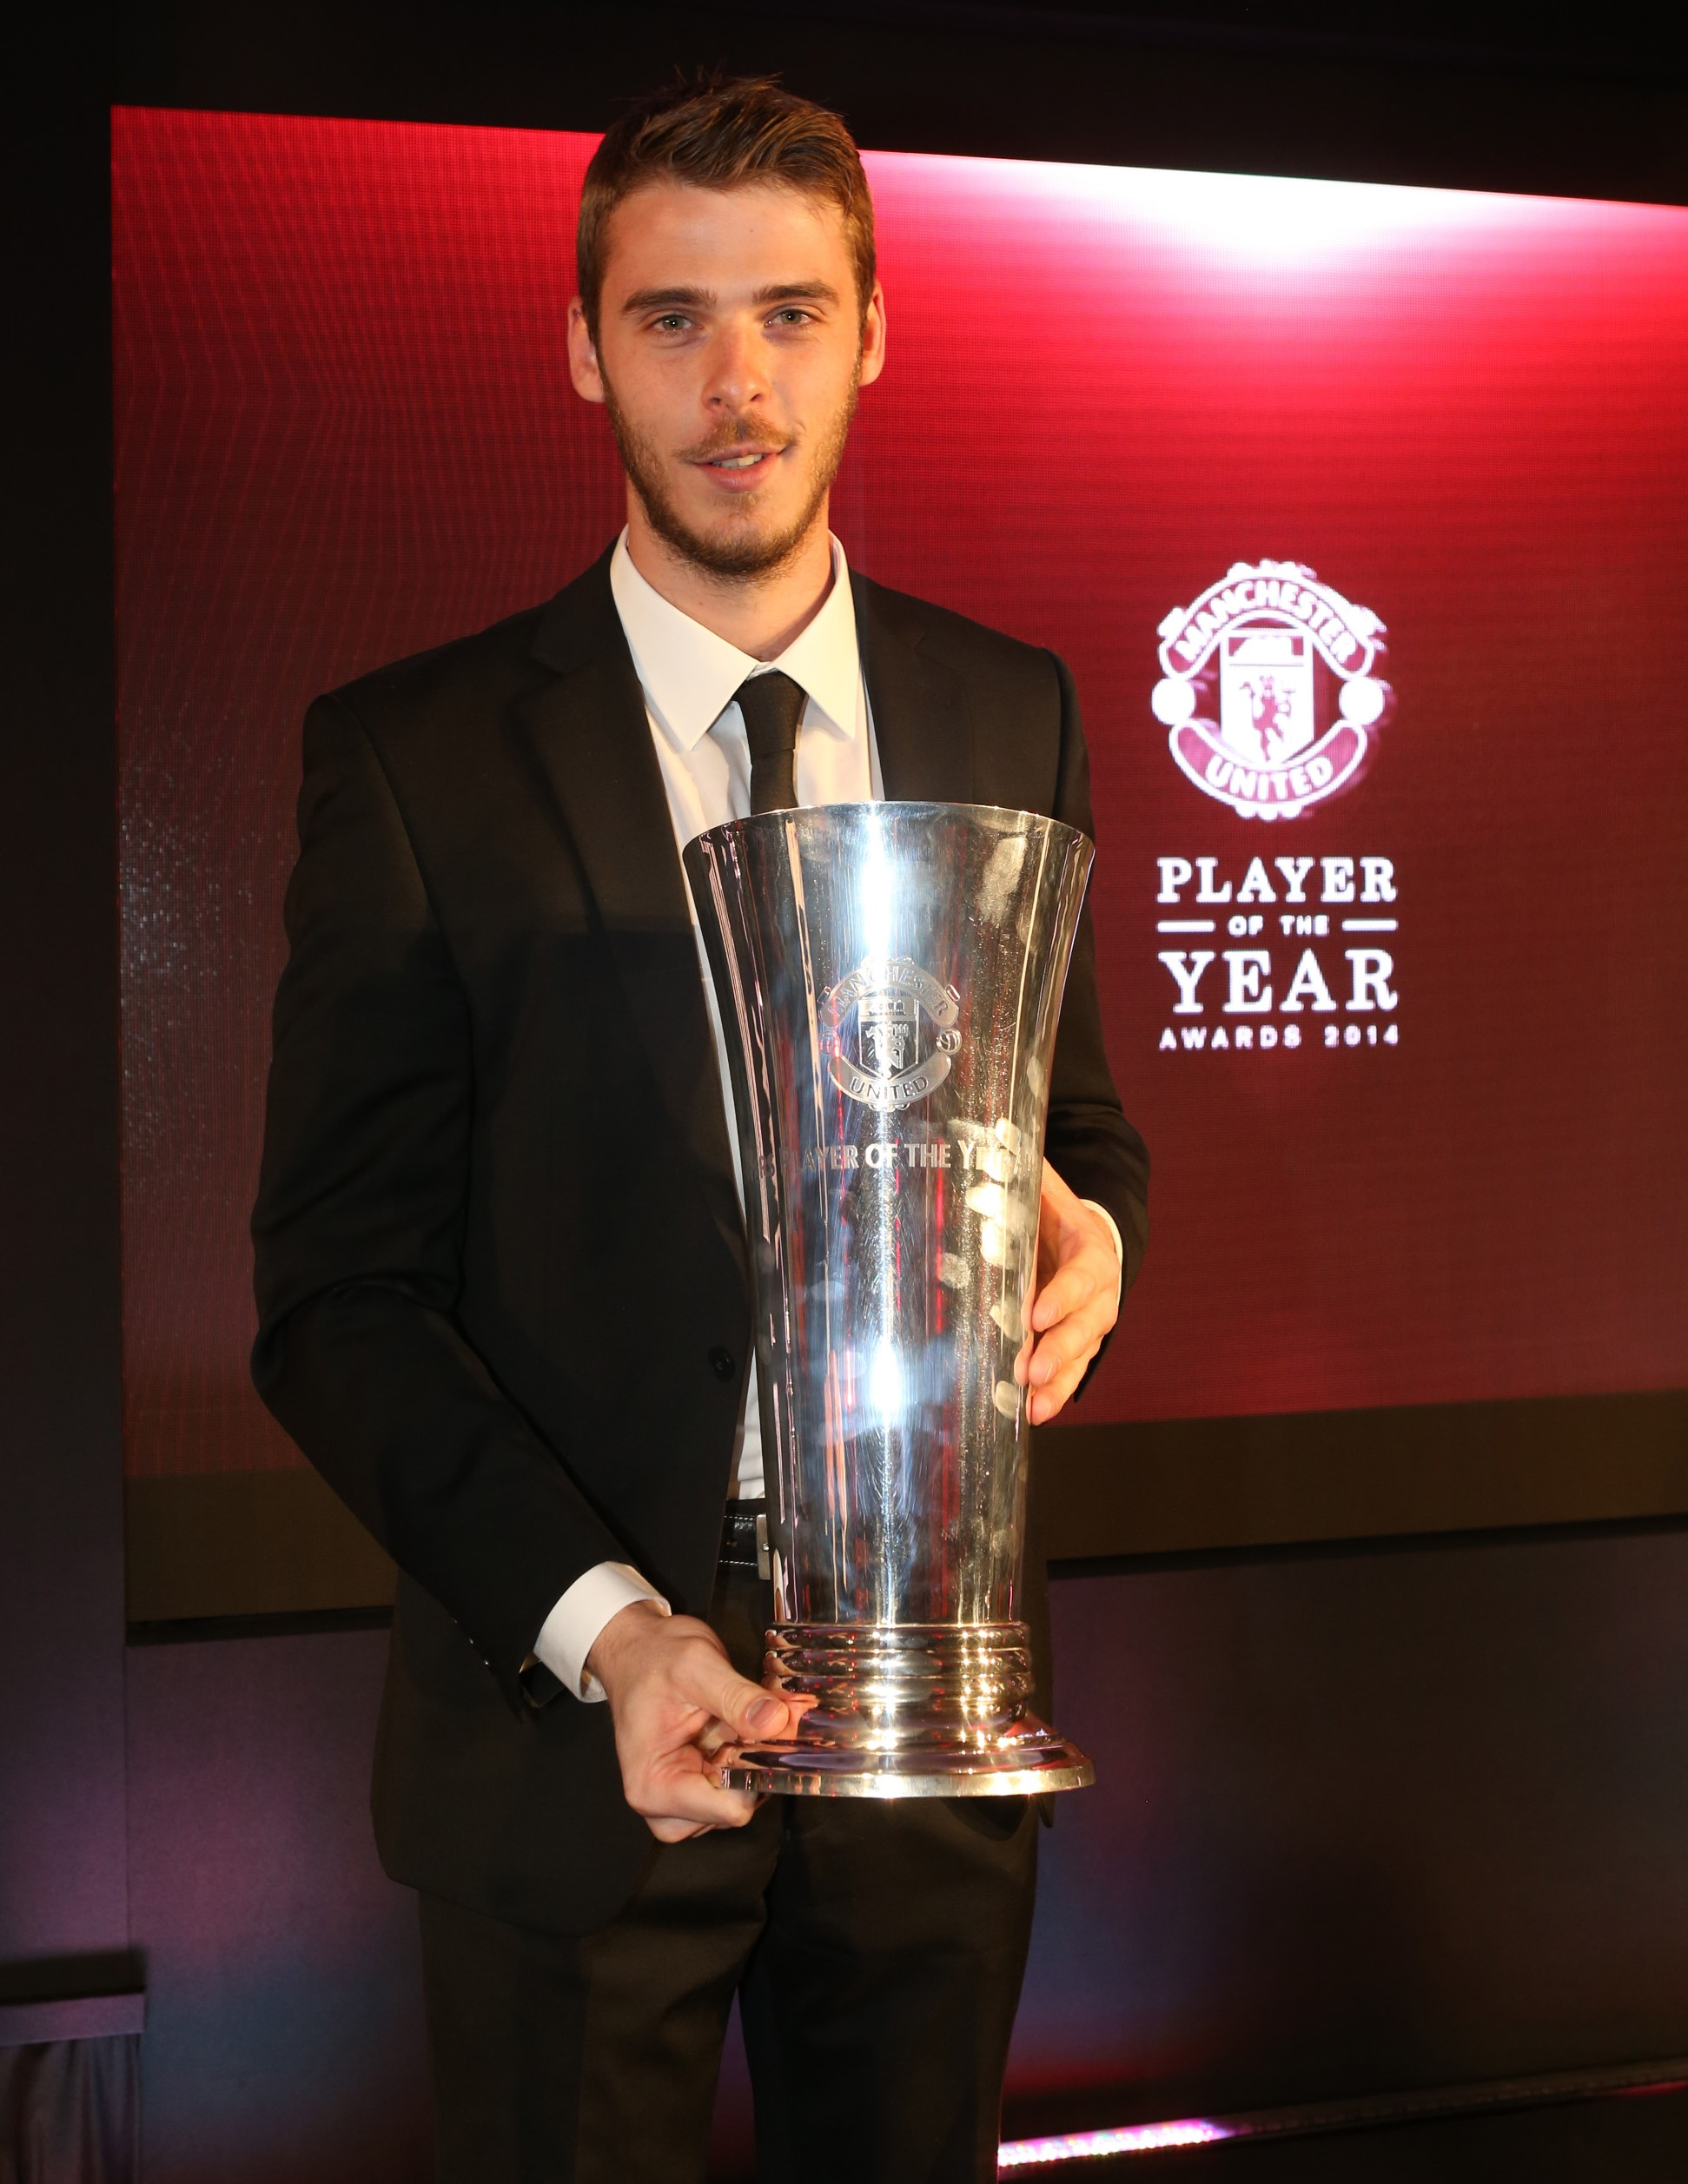 david de gea free hd player of year mobile desktop jpg